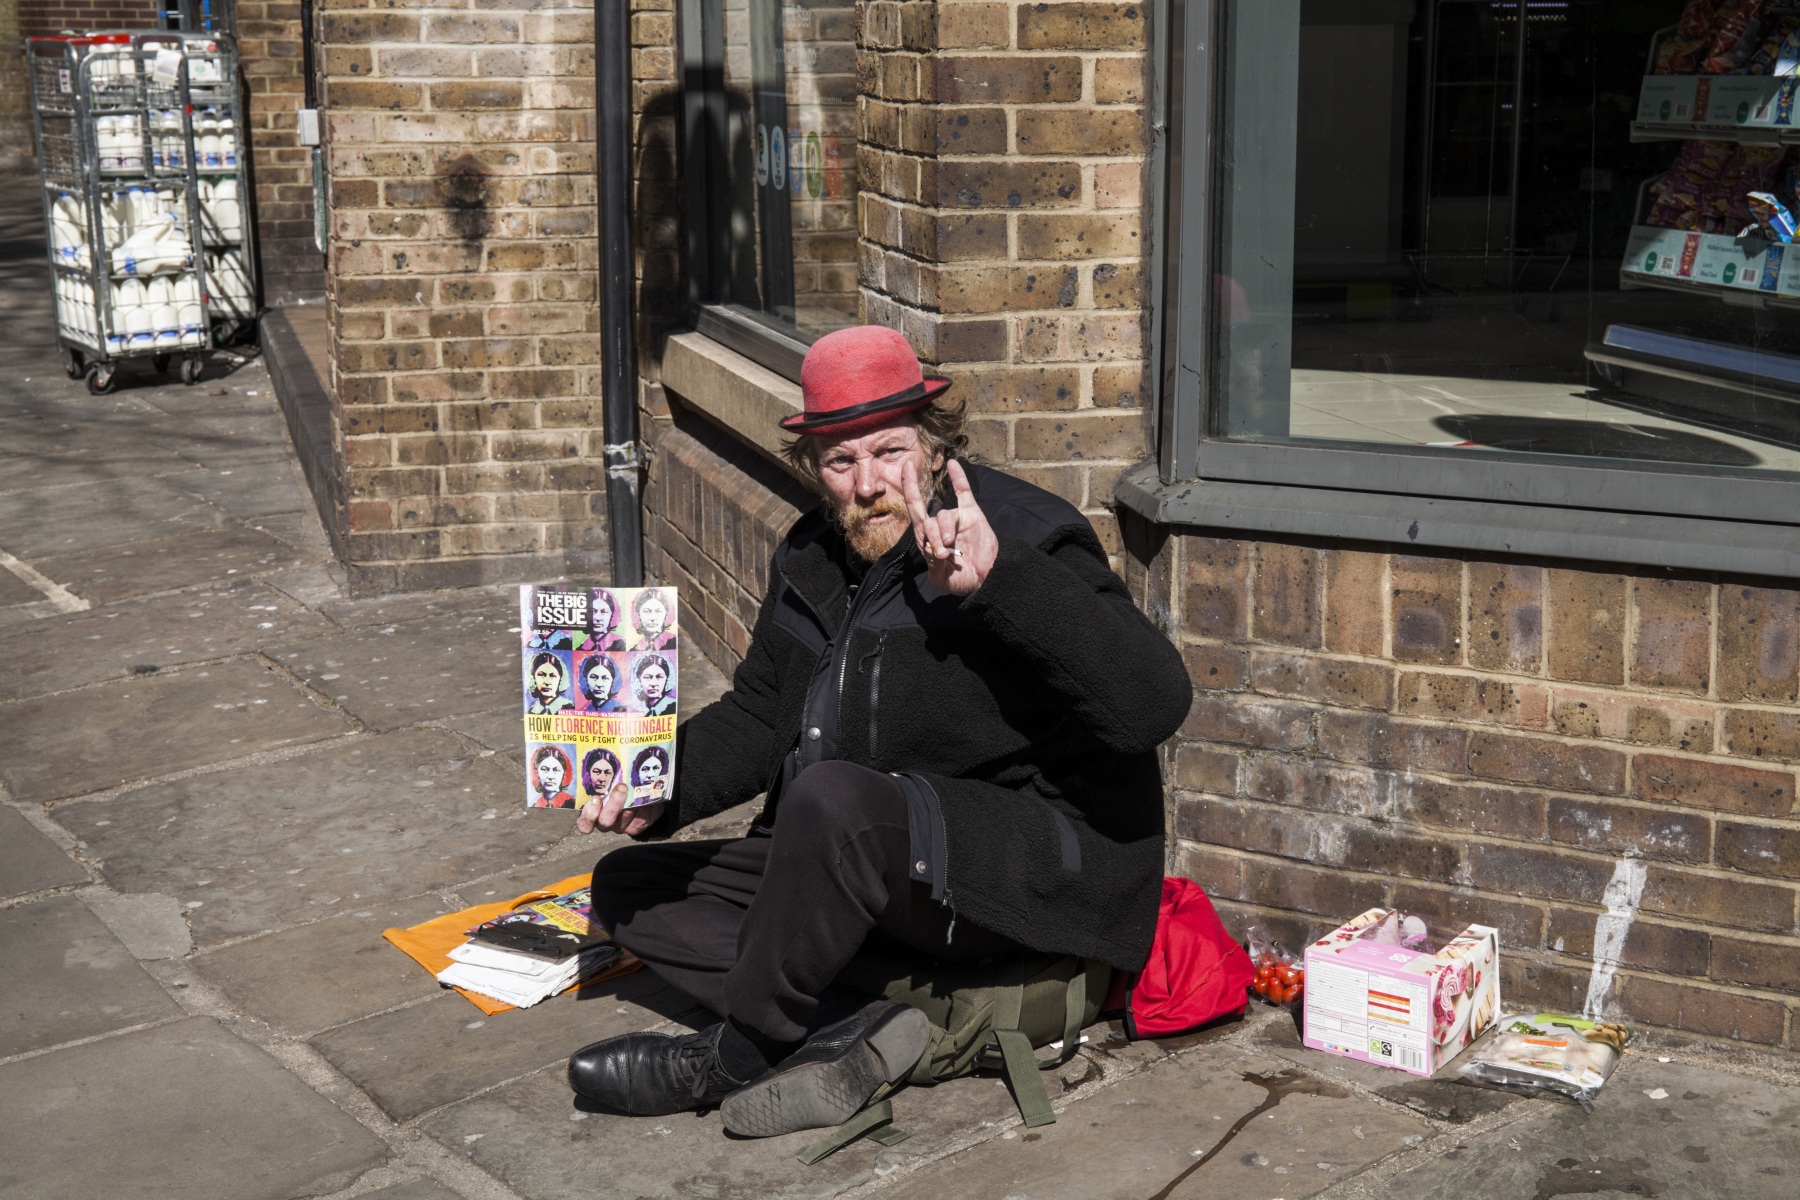 Homeless Man holding Big Issue with Florence Nightingale Warhol style Cover